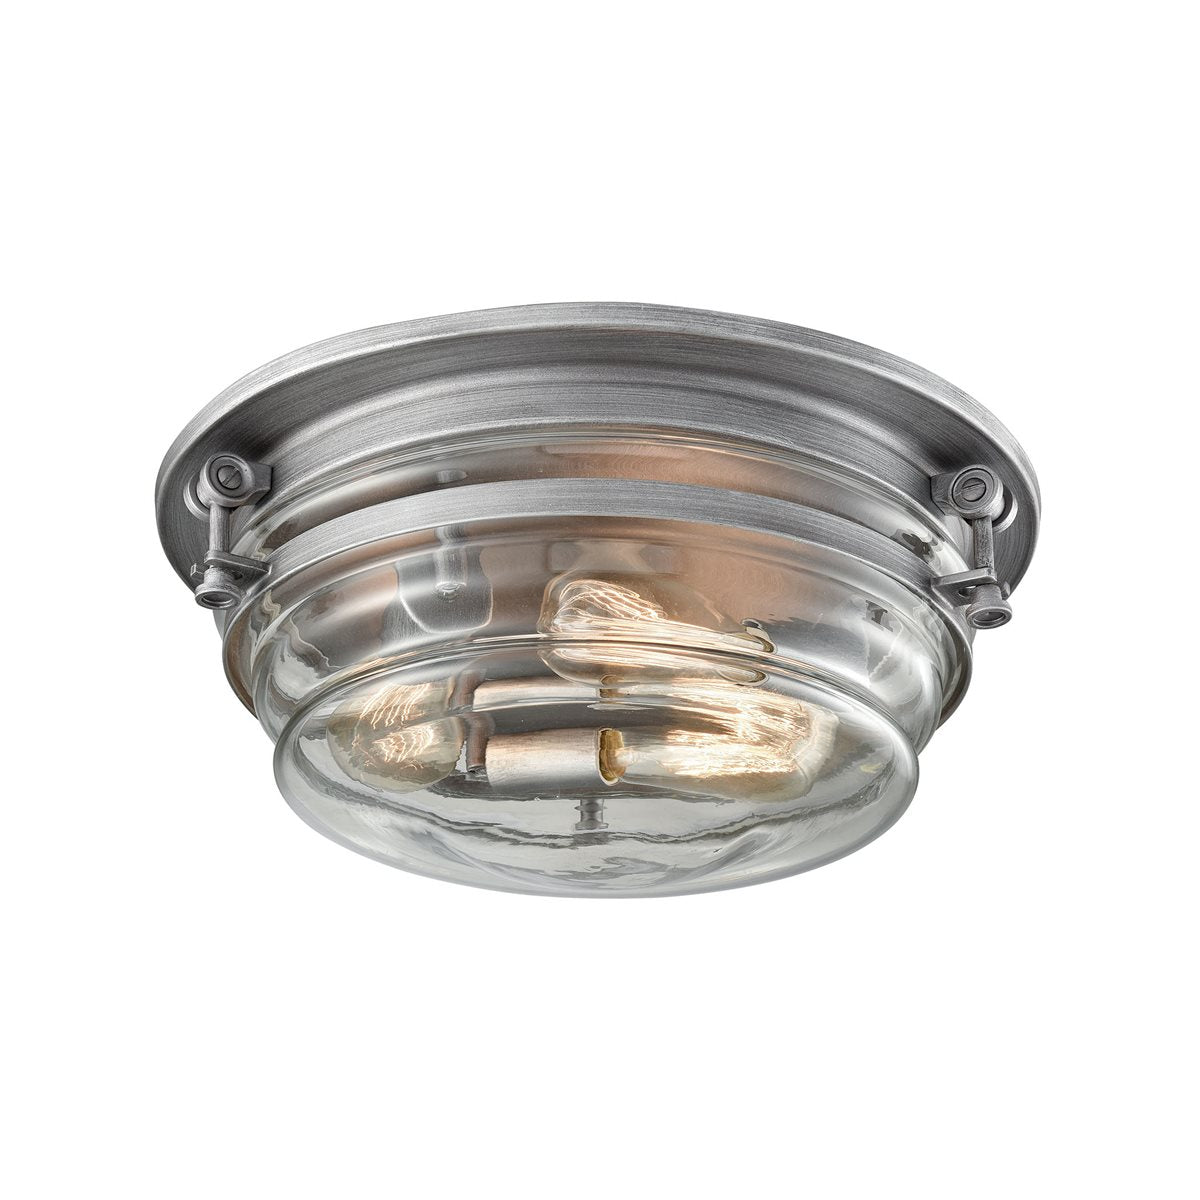 Riley 3 Flush Mount in Weathered Zinc design by BD Fine Lighting